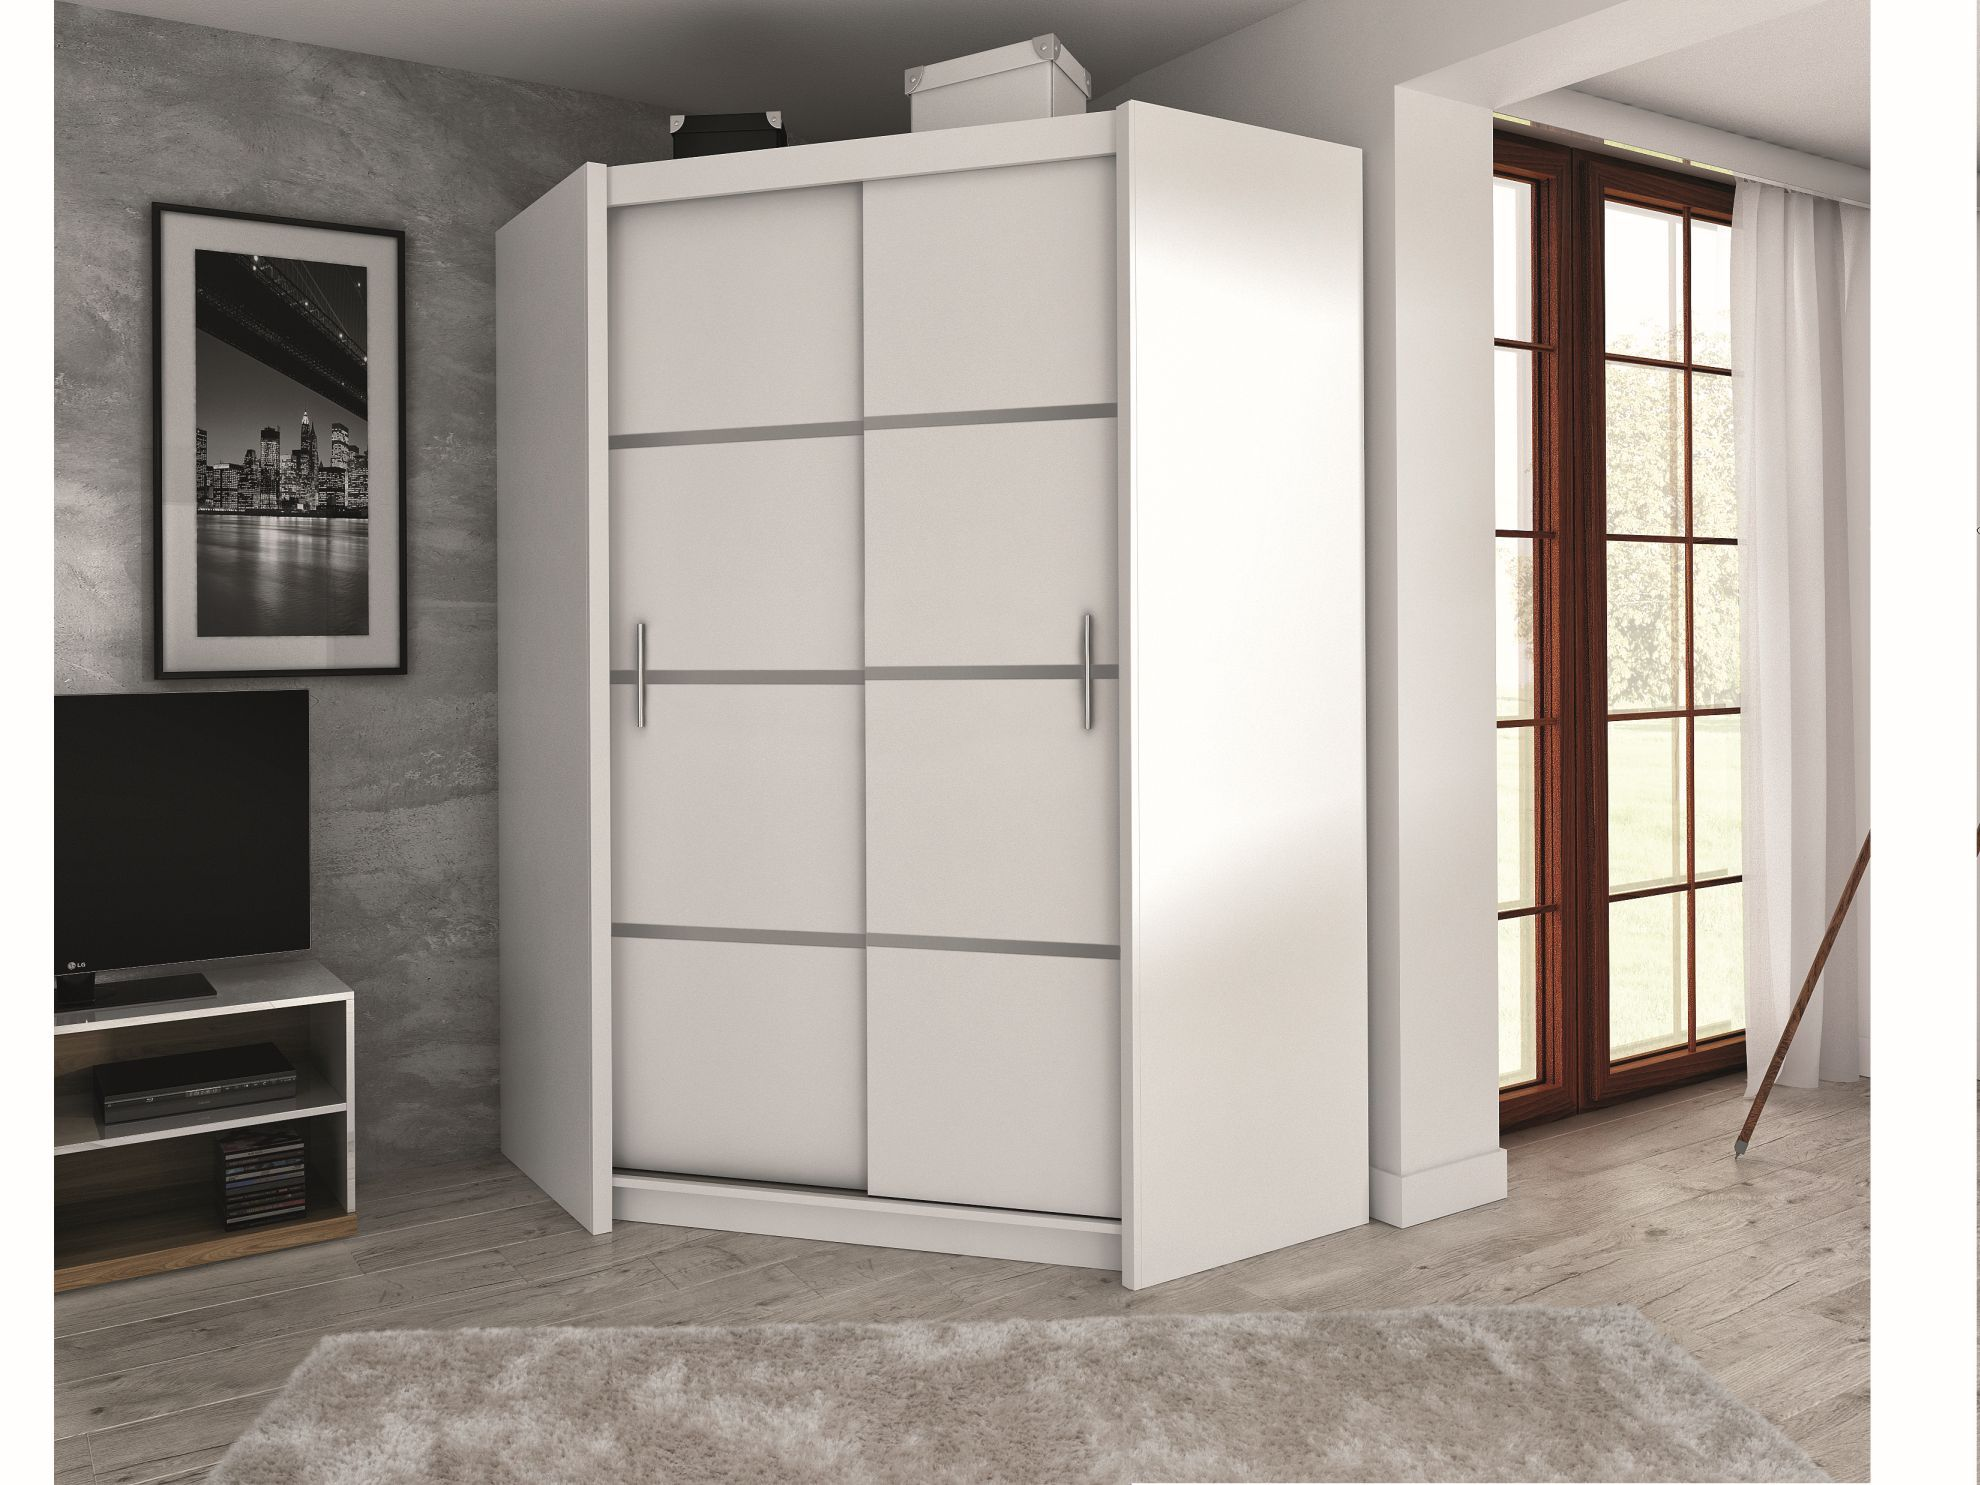 chambres - Armoire Chambre Moderne